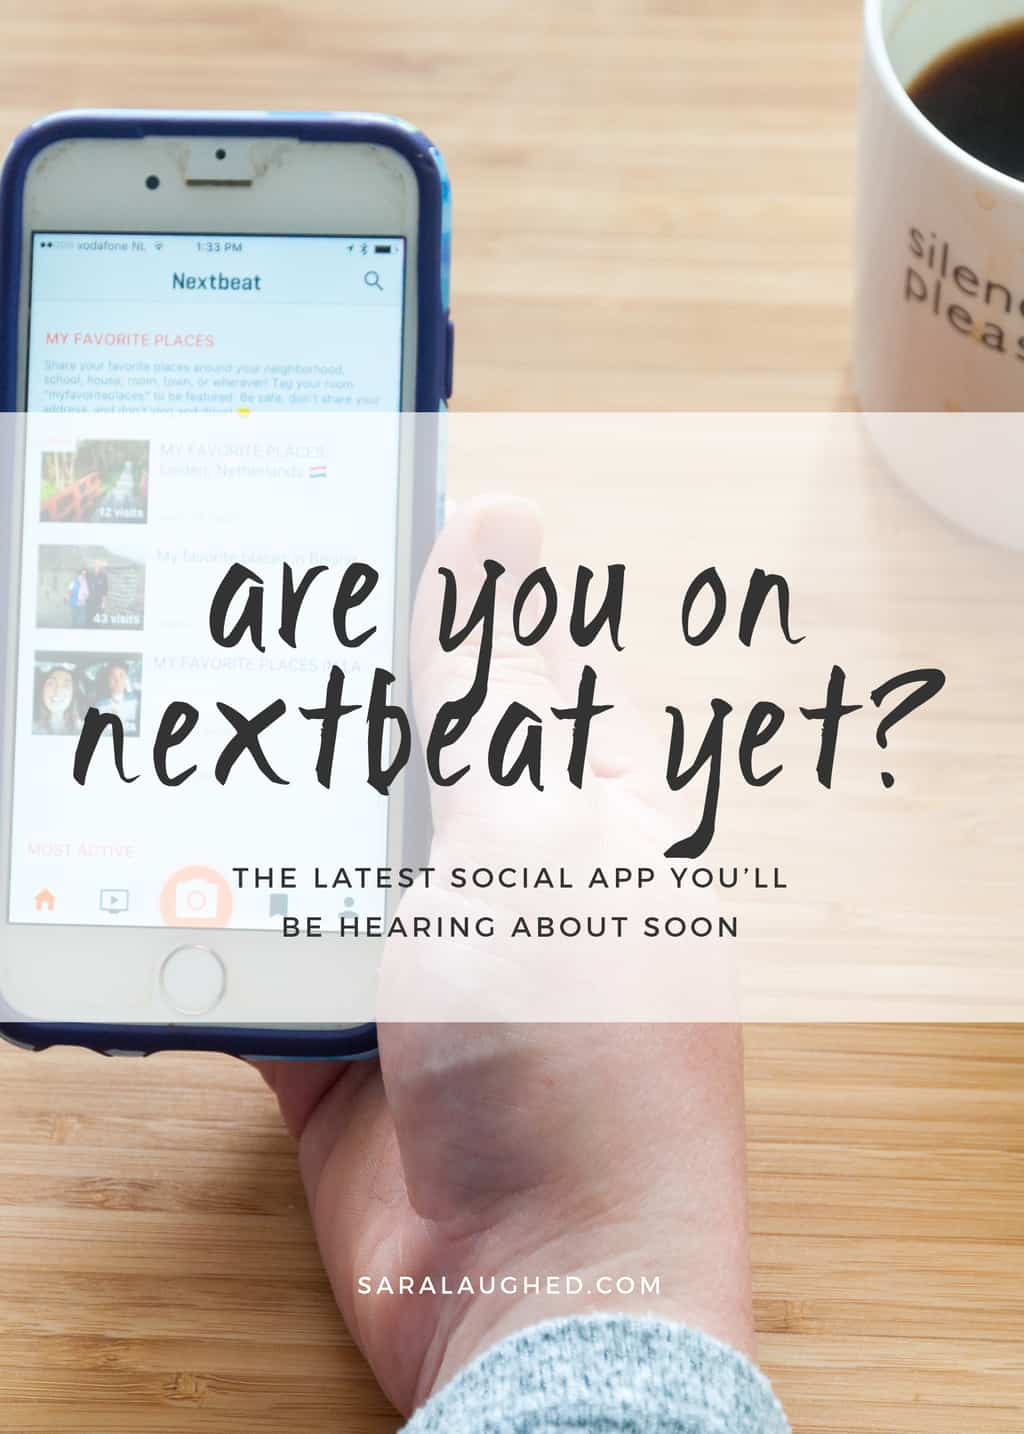 Are you on Nextbeat yet? This new social app is starting to get popular — here's what you need to know before signing up!